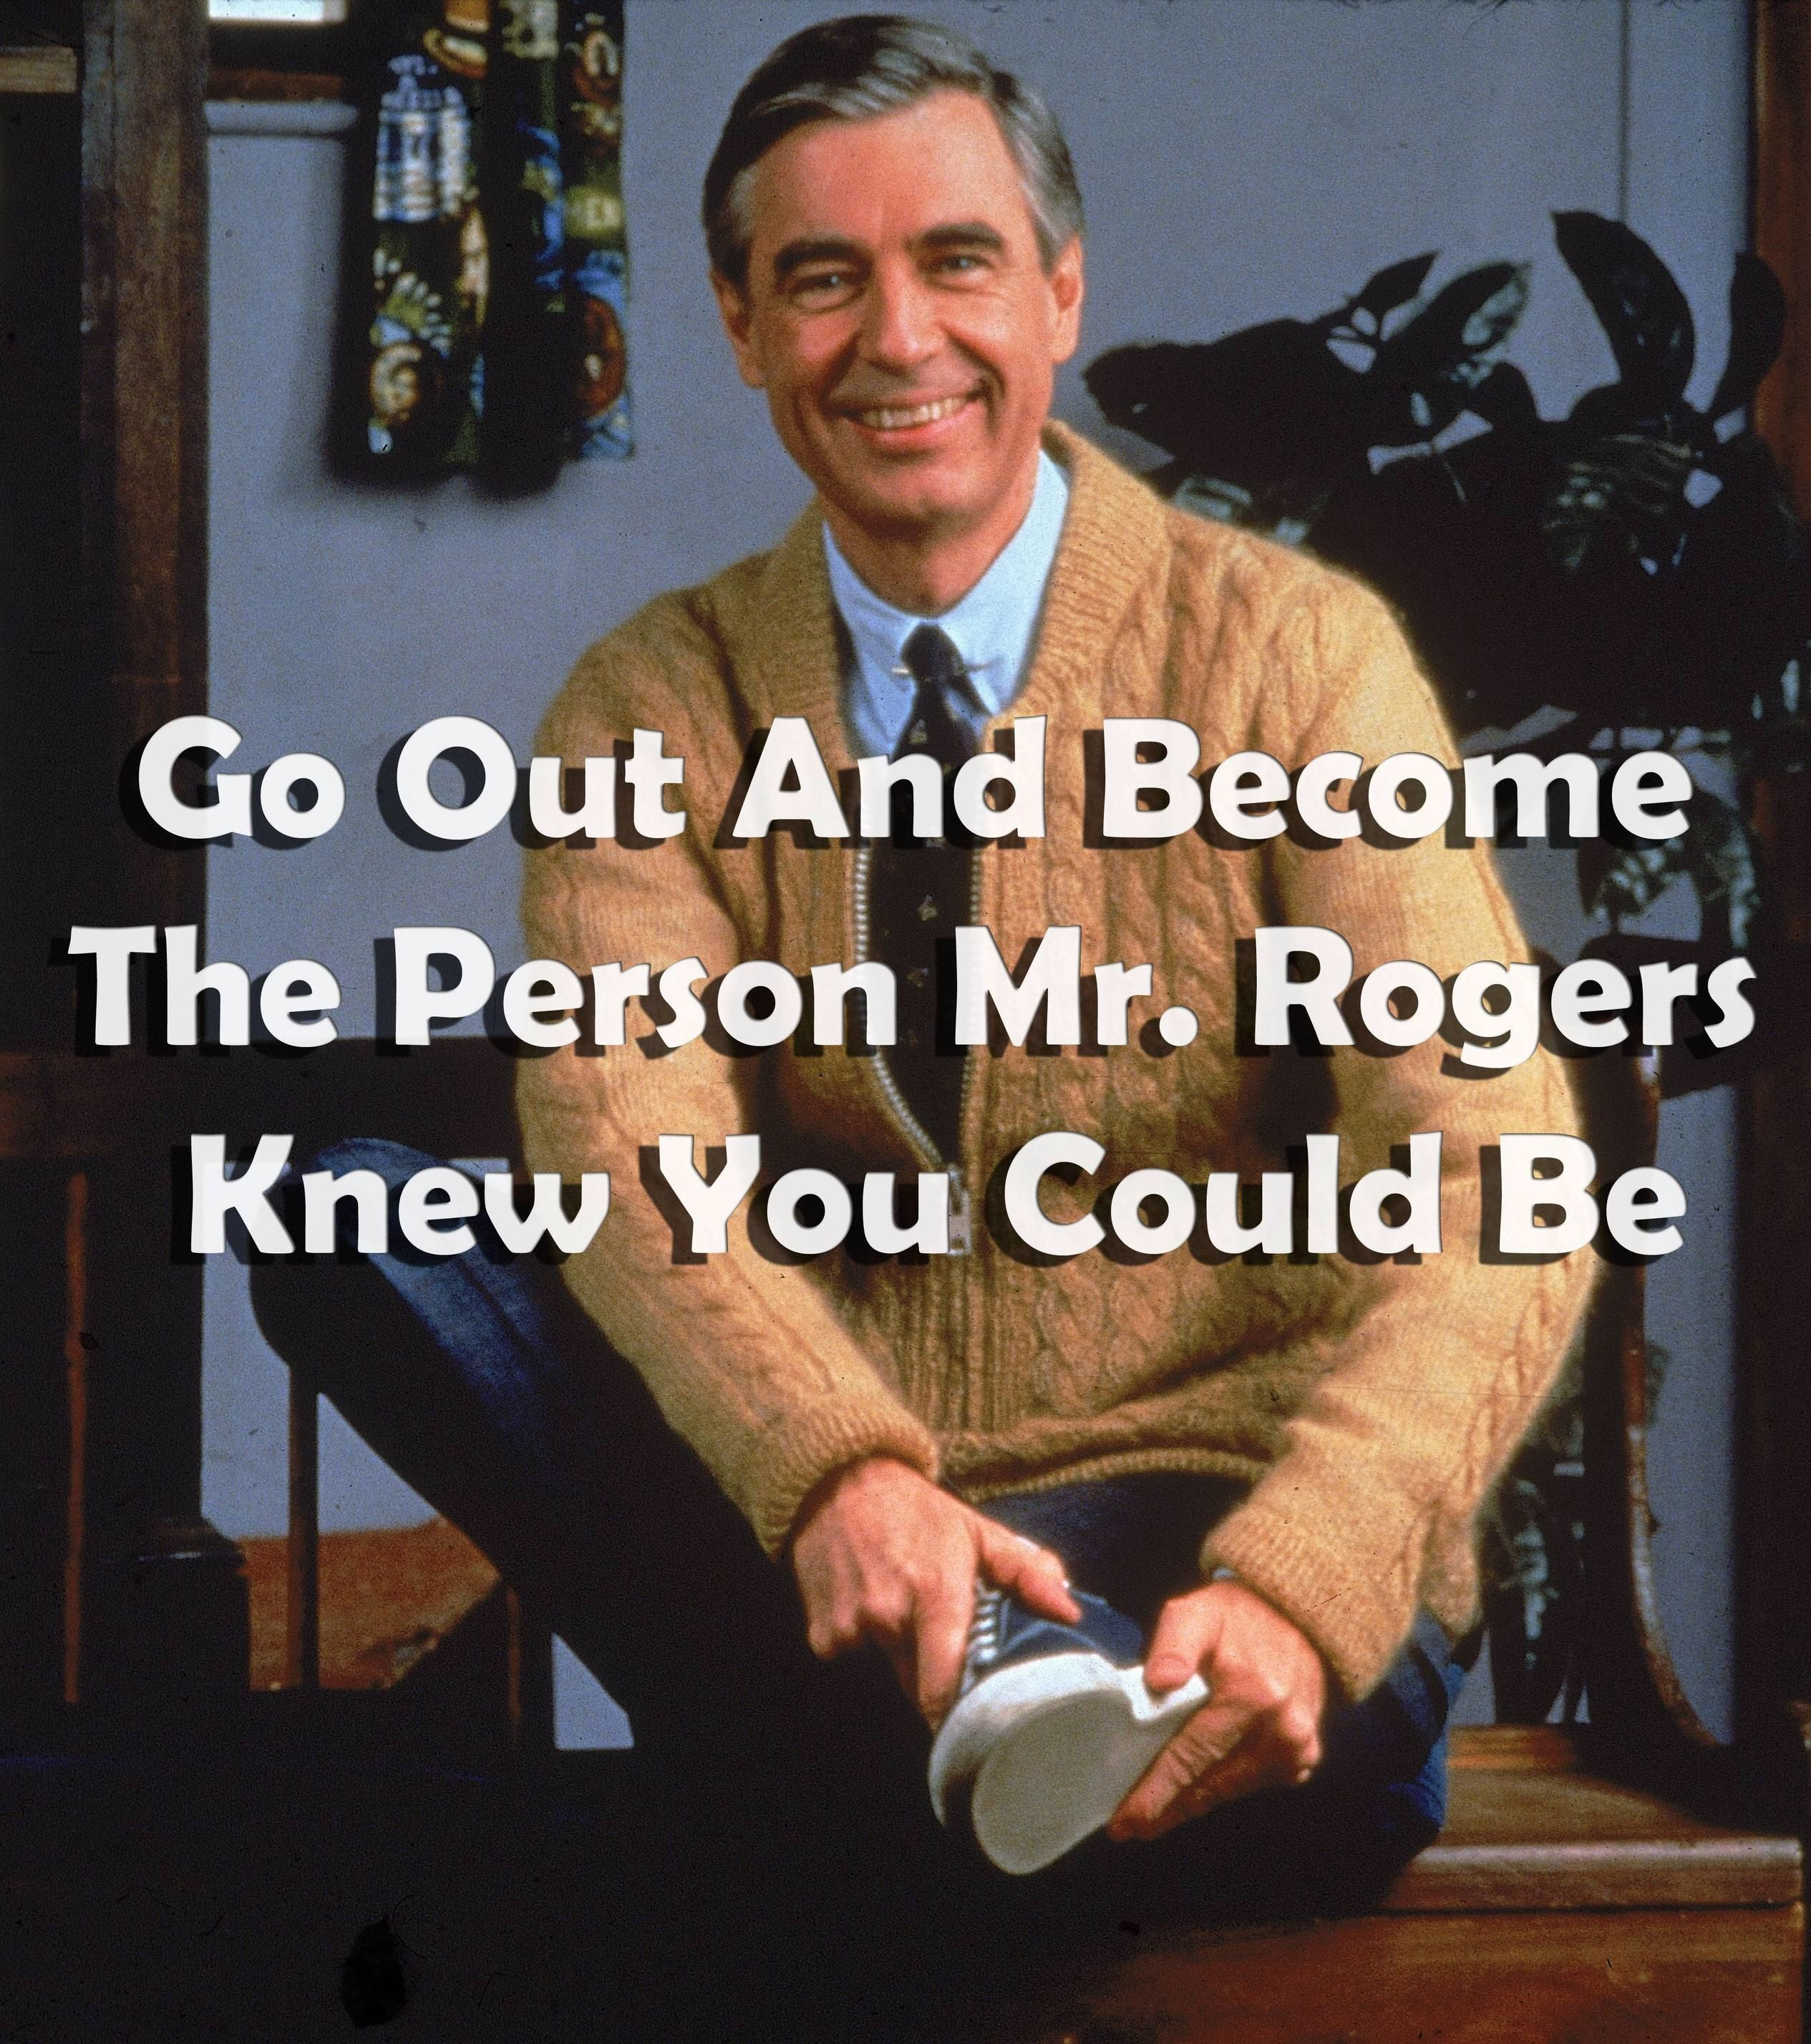 Mr. Rogers was looking out for us.